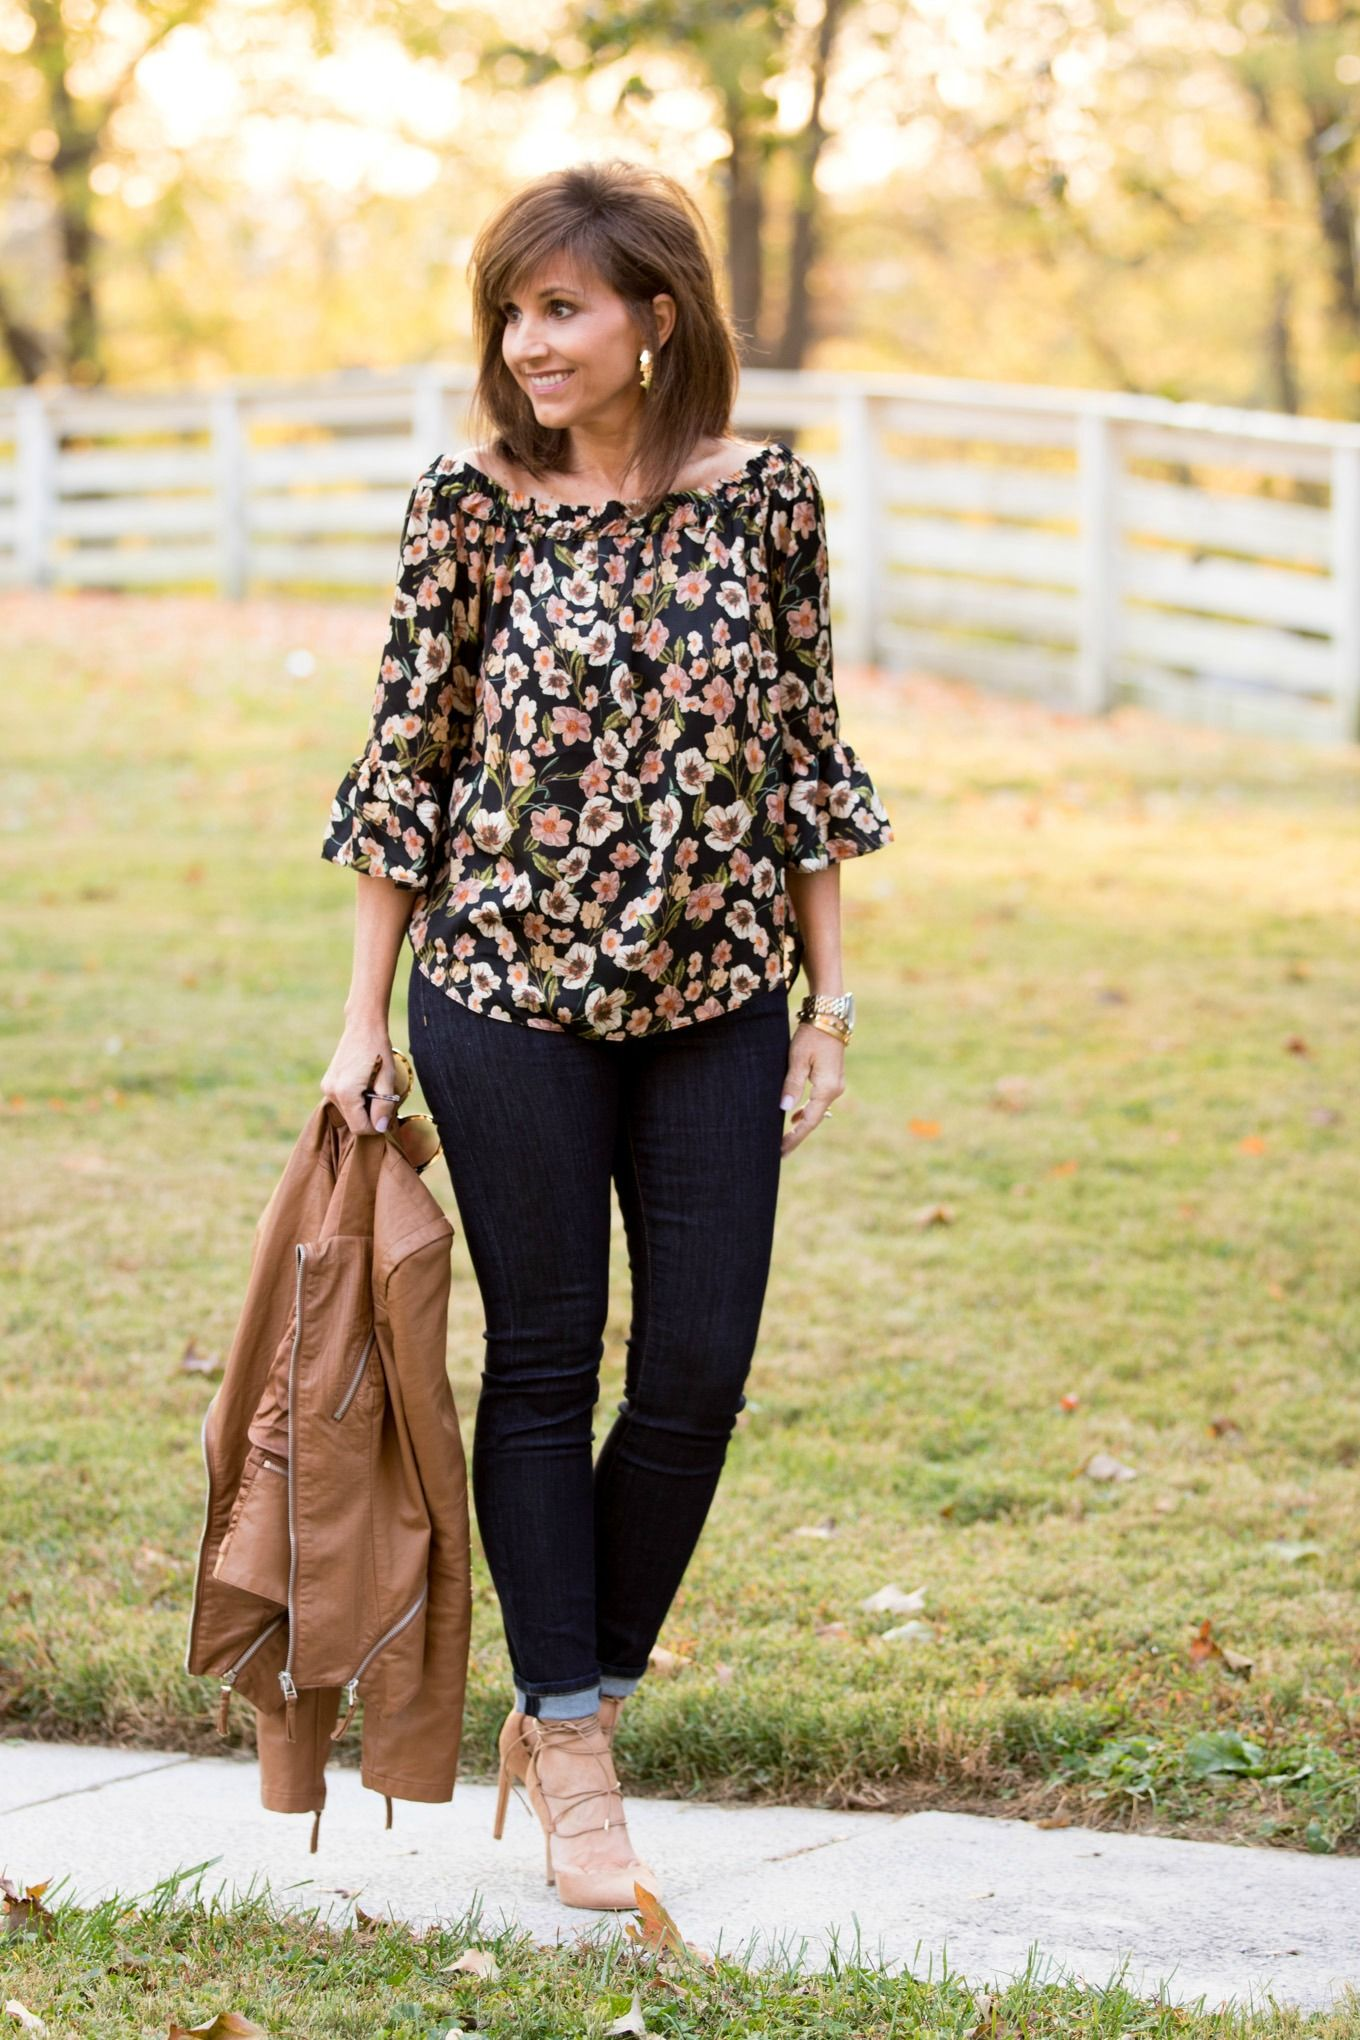 000e1b4f7d55e Floral and Lace Up Trends for Fall